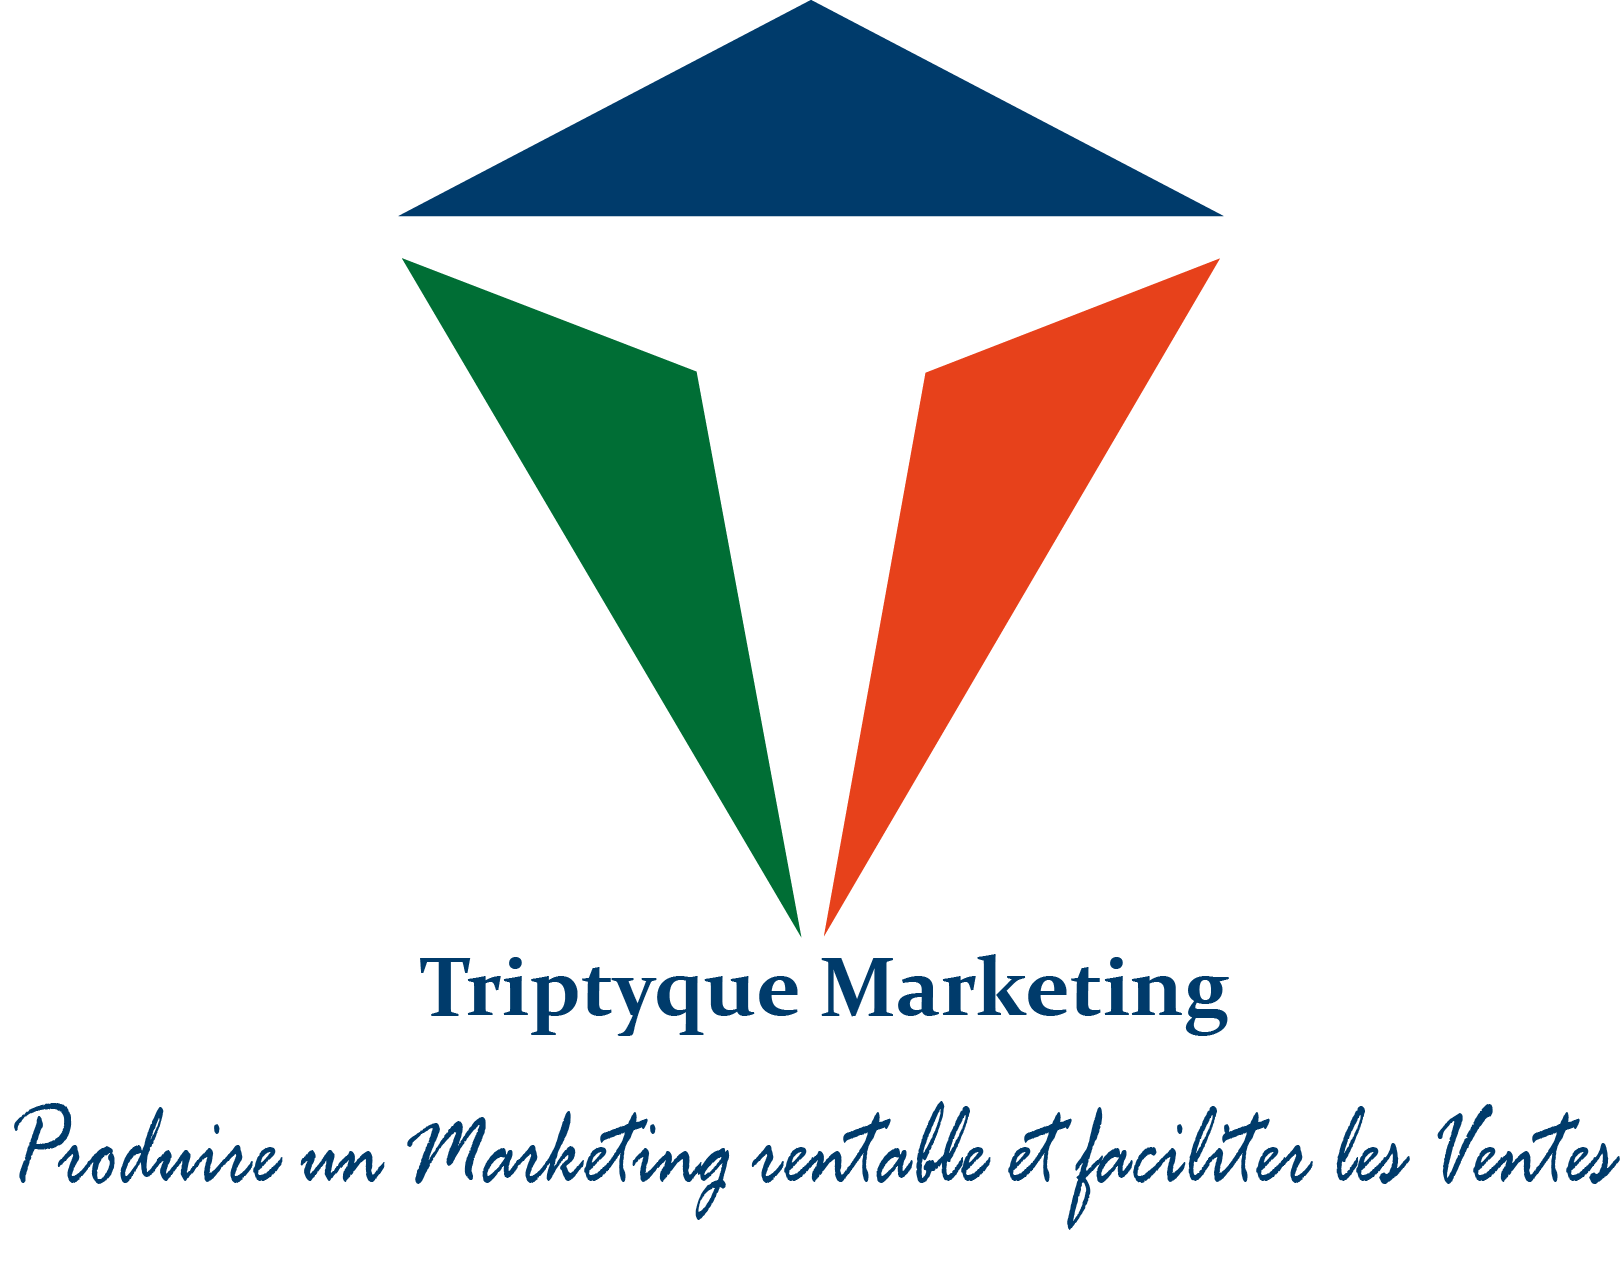 Triptyque Marketing